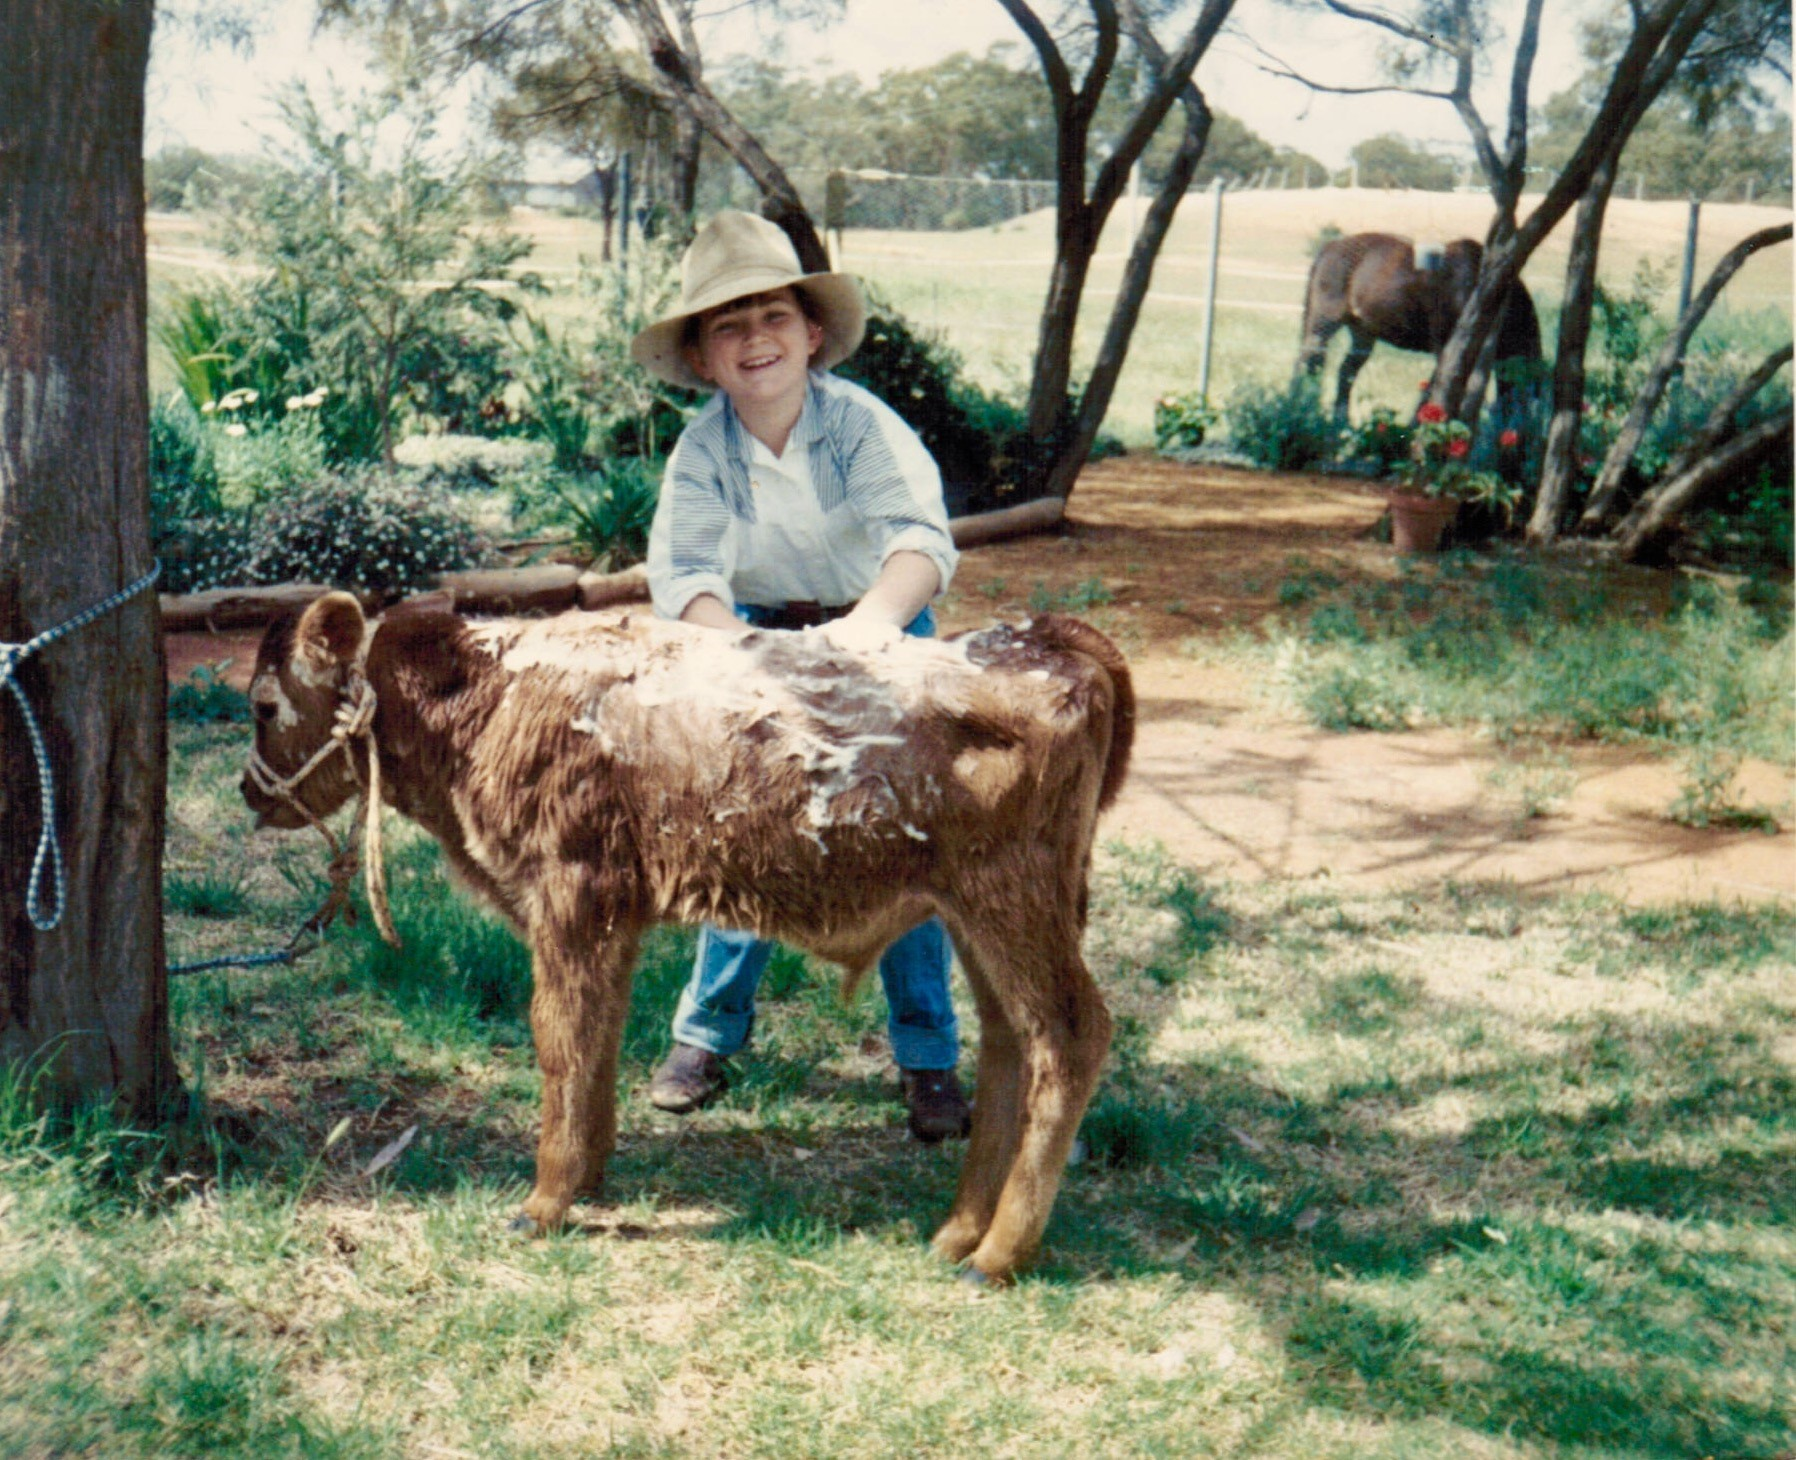 """Lisa washing her poddy calf """"Harry"""", c. 1990, image supplied."""